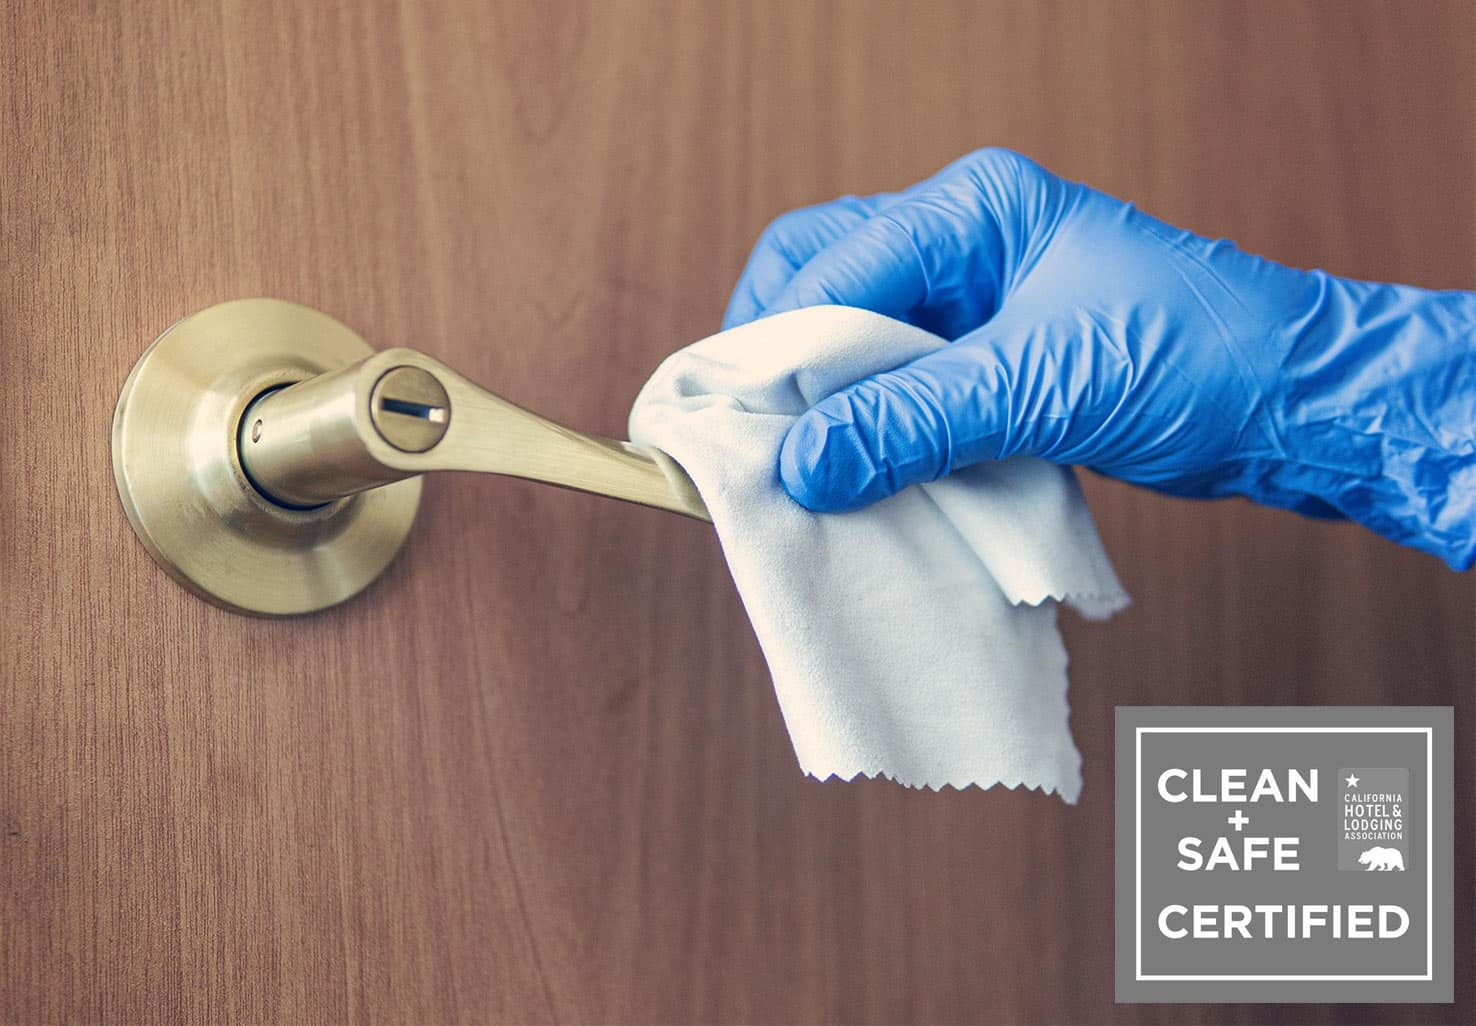 Maid cleaning doorknob at our Placerville, CA Bed & Breakfast